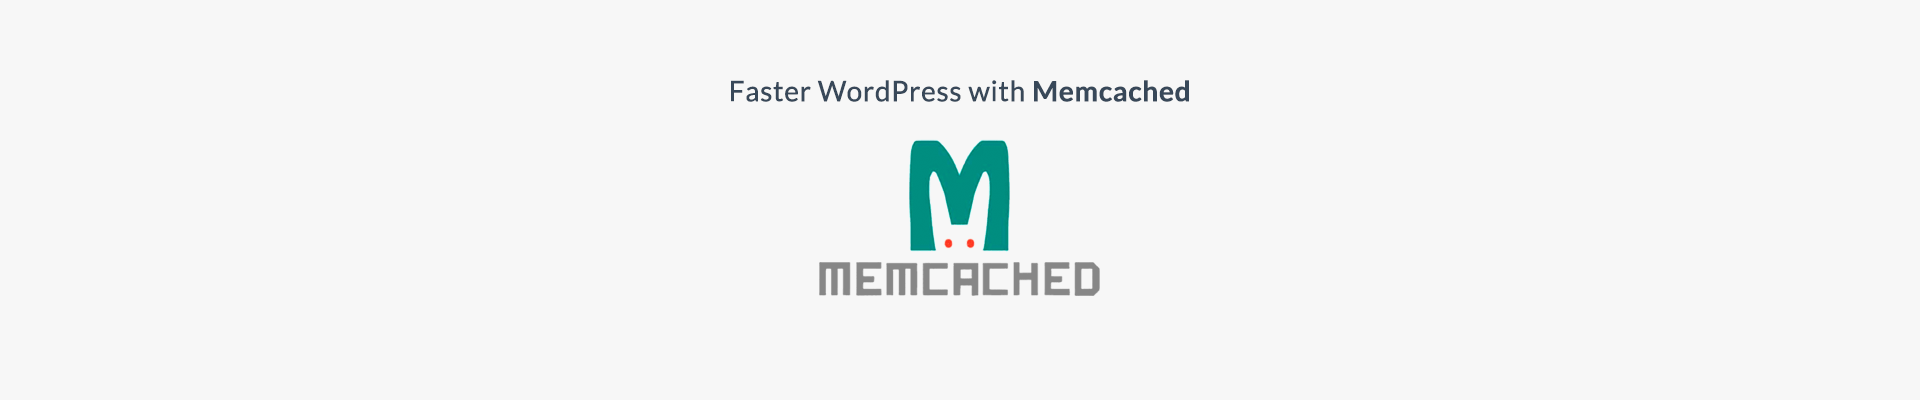 How to improve WordPress site speed with Memcached